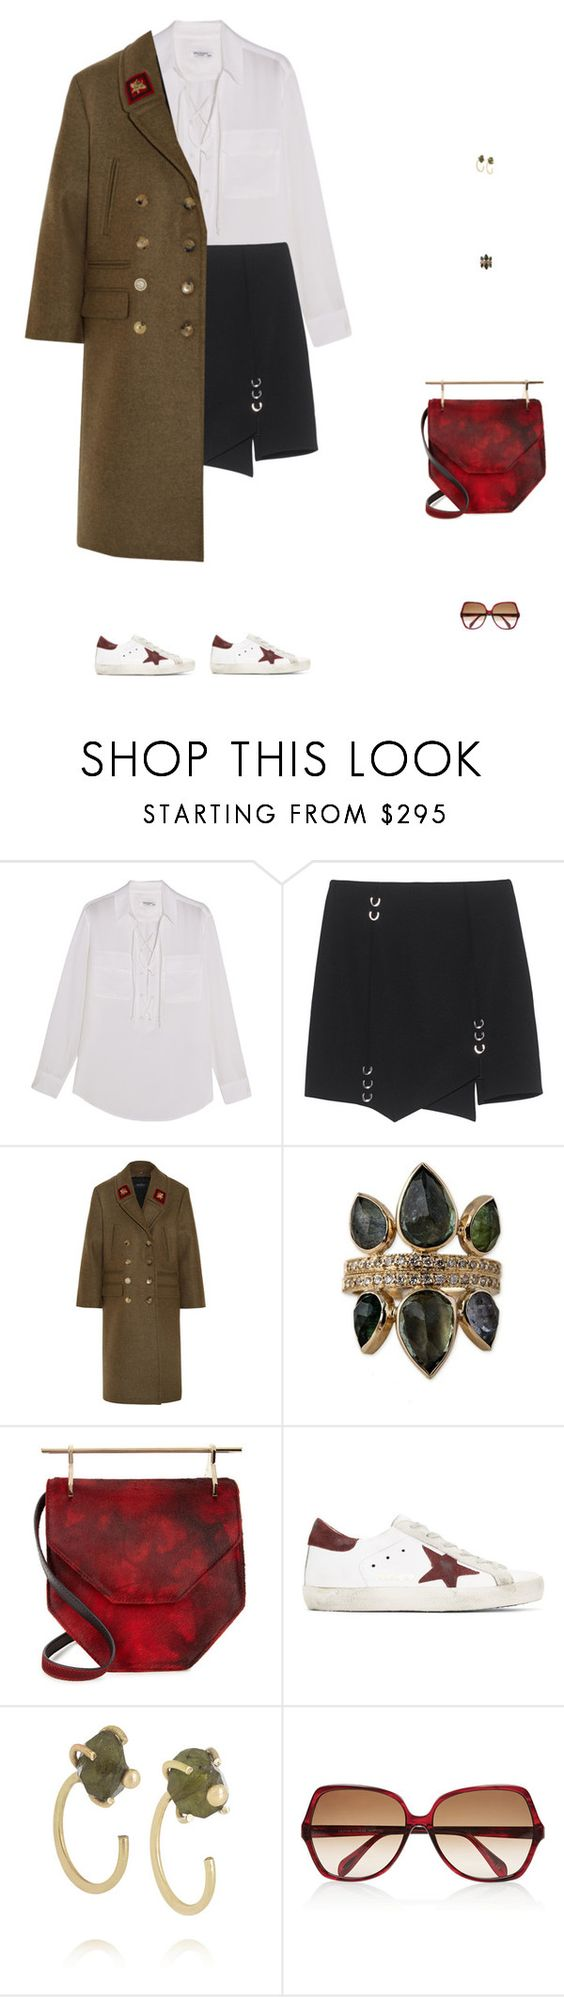 """""""🍂🍁"""" by wangruoxi ❤ liked on Polyvore featuring Equipment, Gucci, M2Malletier, Golden Goose, Melissa Joy Manning and Oliver Peoples"""